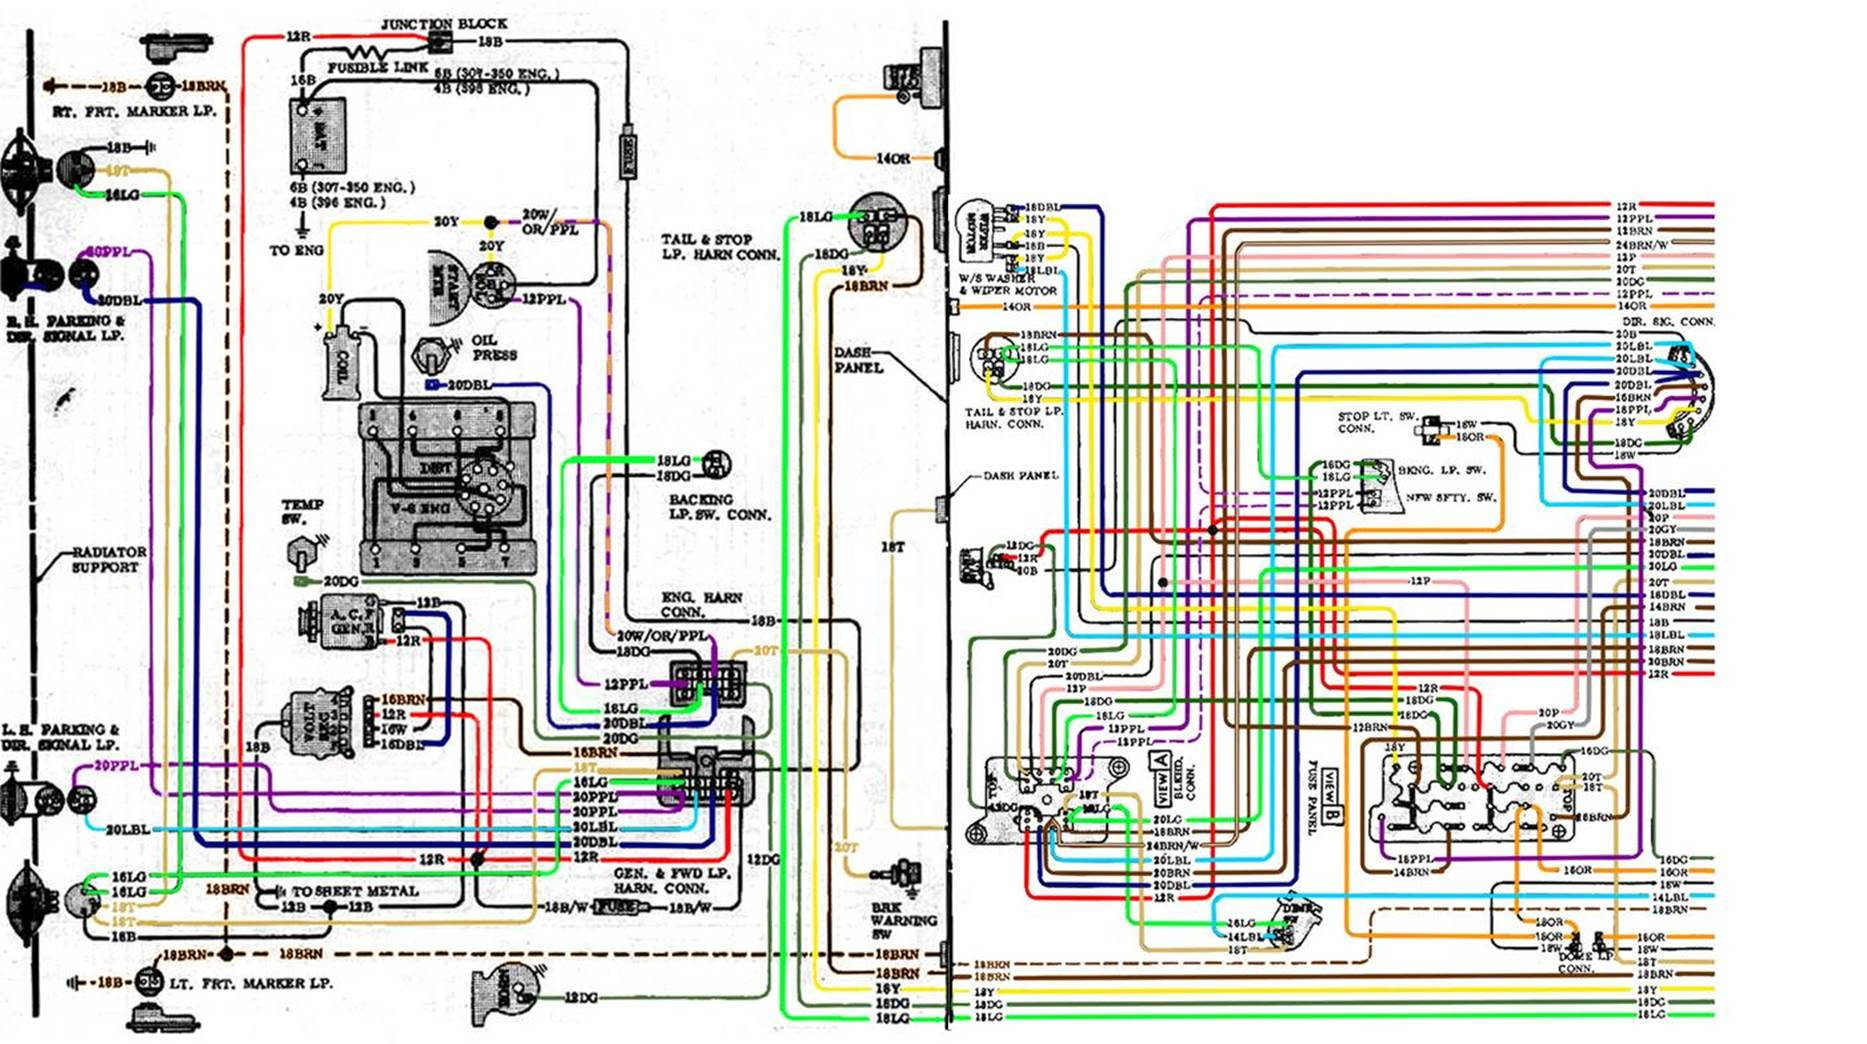 image002 gm wiring diagrams gm wiring diagrams online \u2022 wiring diagrams j Ford 4600 Wiring Schematic at fashall.co